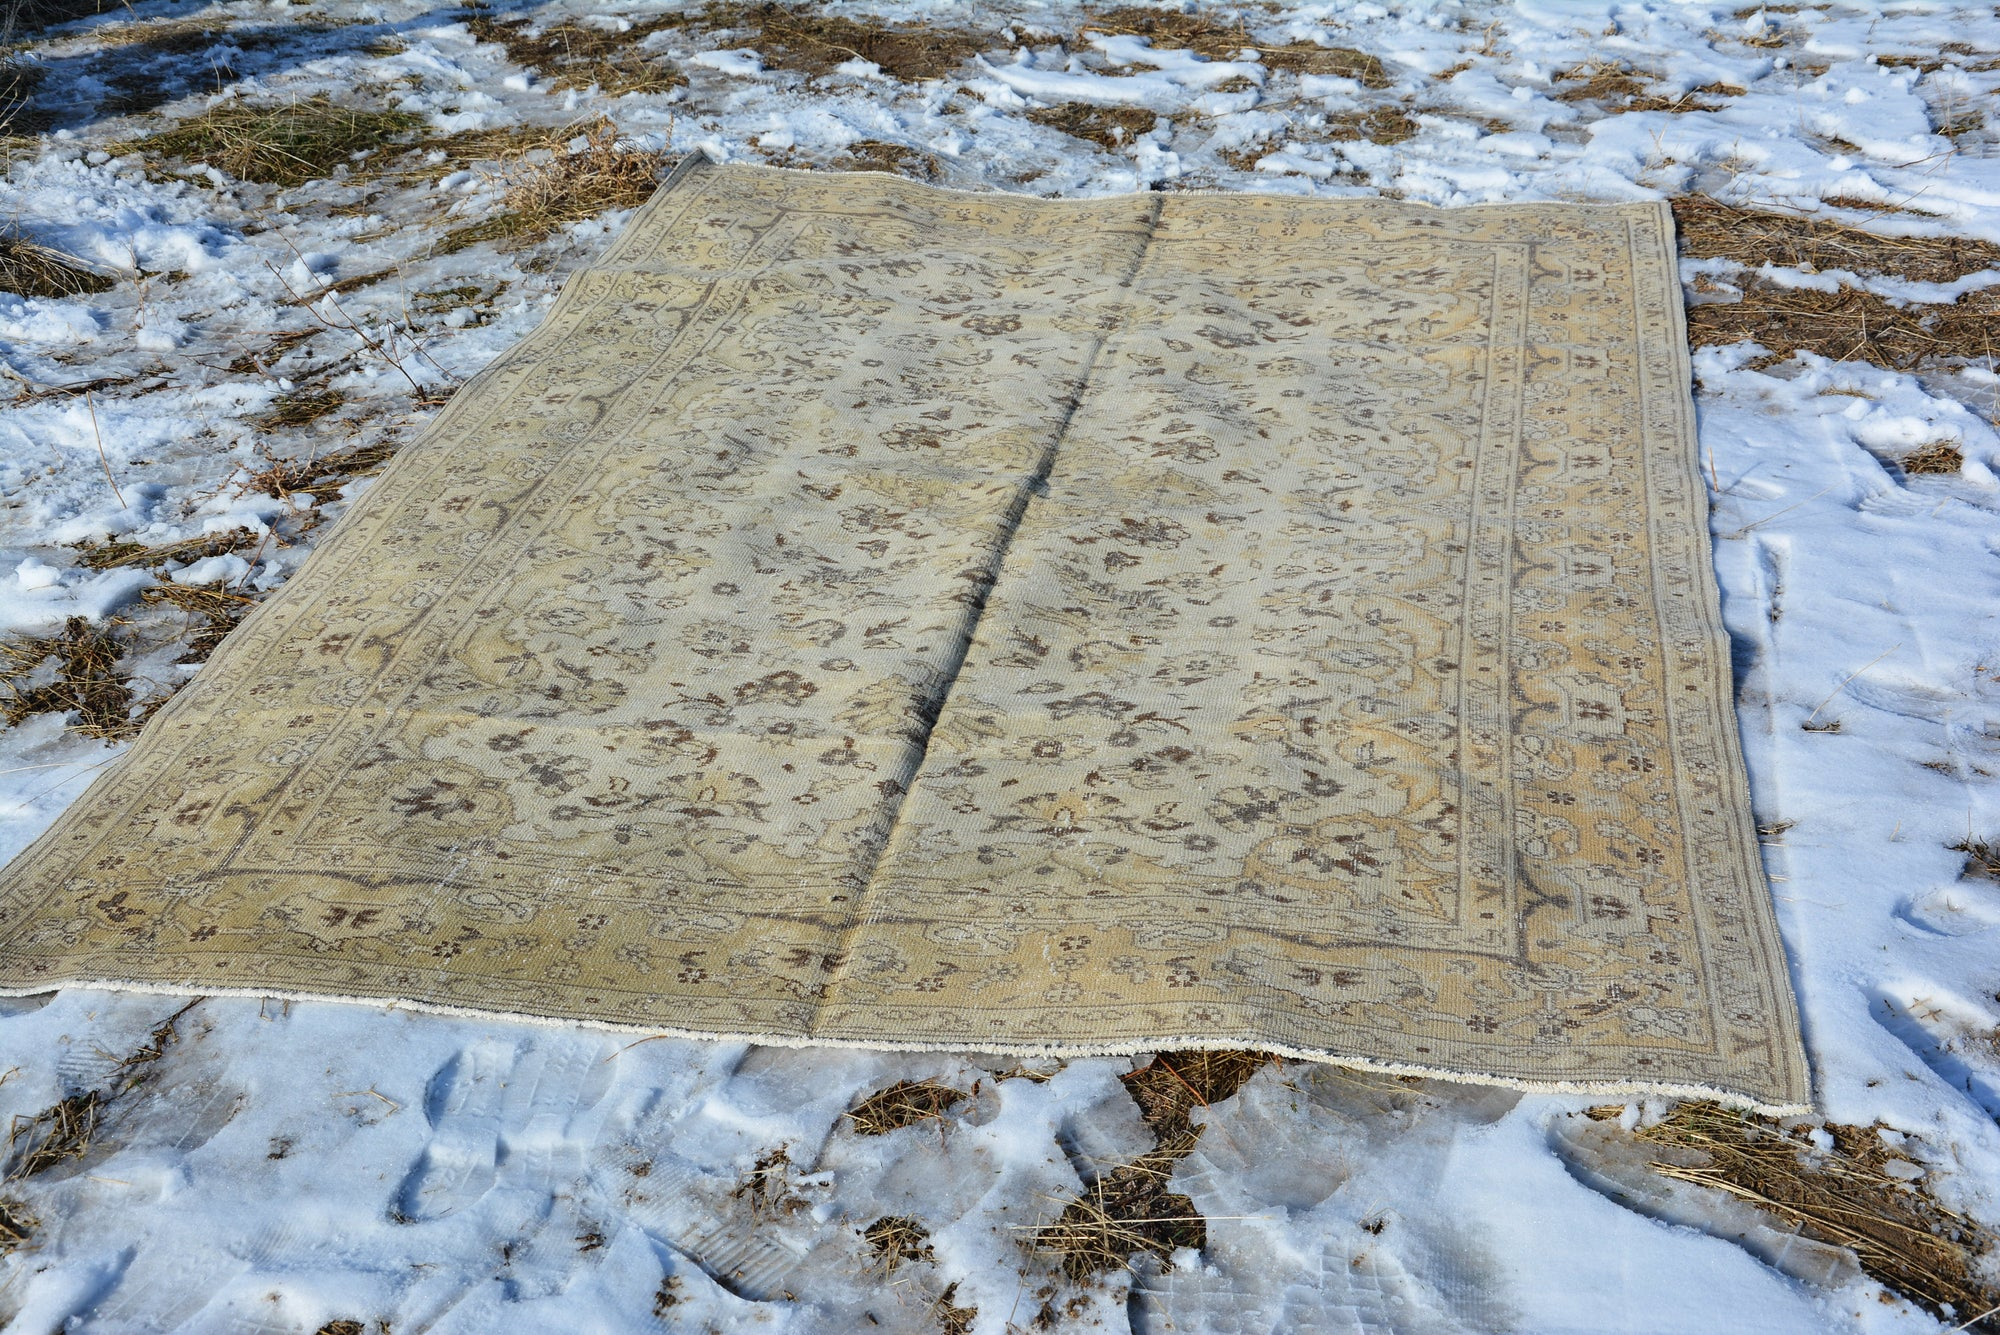 Vintage Salmon Rug, Pastel Turkish Rug, 6 by 10 Rug, Bath Rug, Oushak Rug Runner, Faded Old Rug, 6 x 9 Vintage Rugs,  9.5 x 6.1 Feet AG181